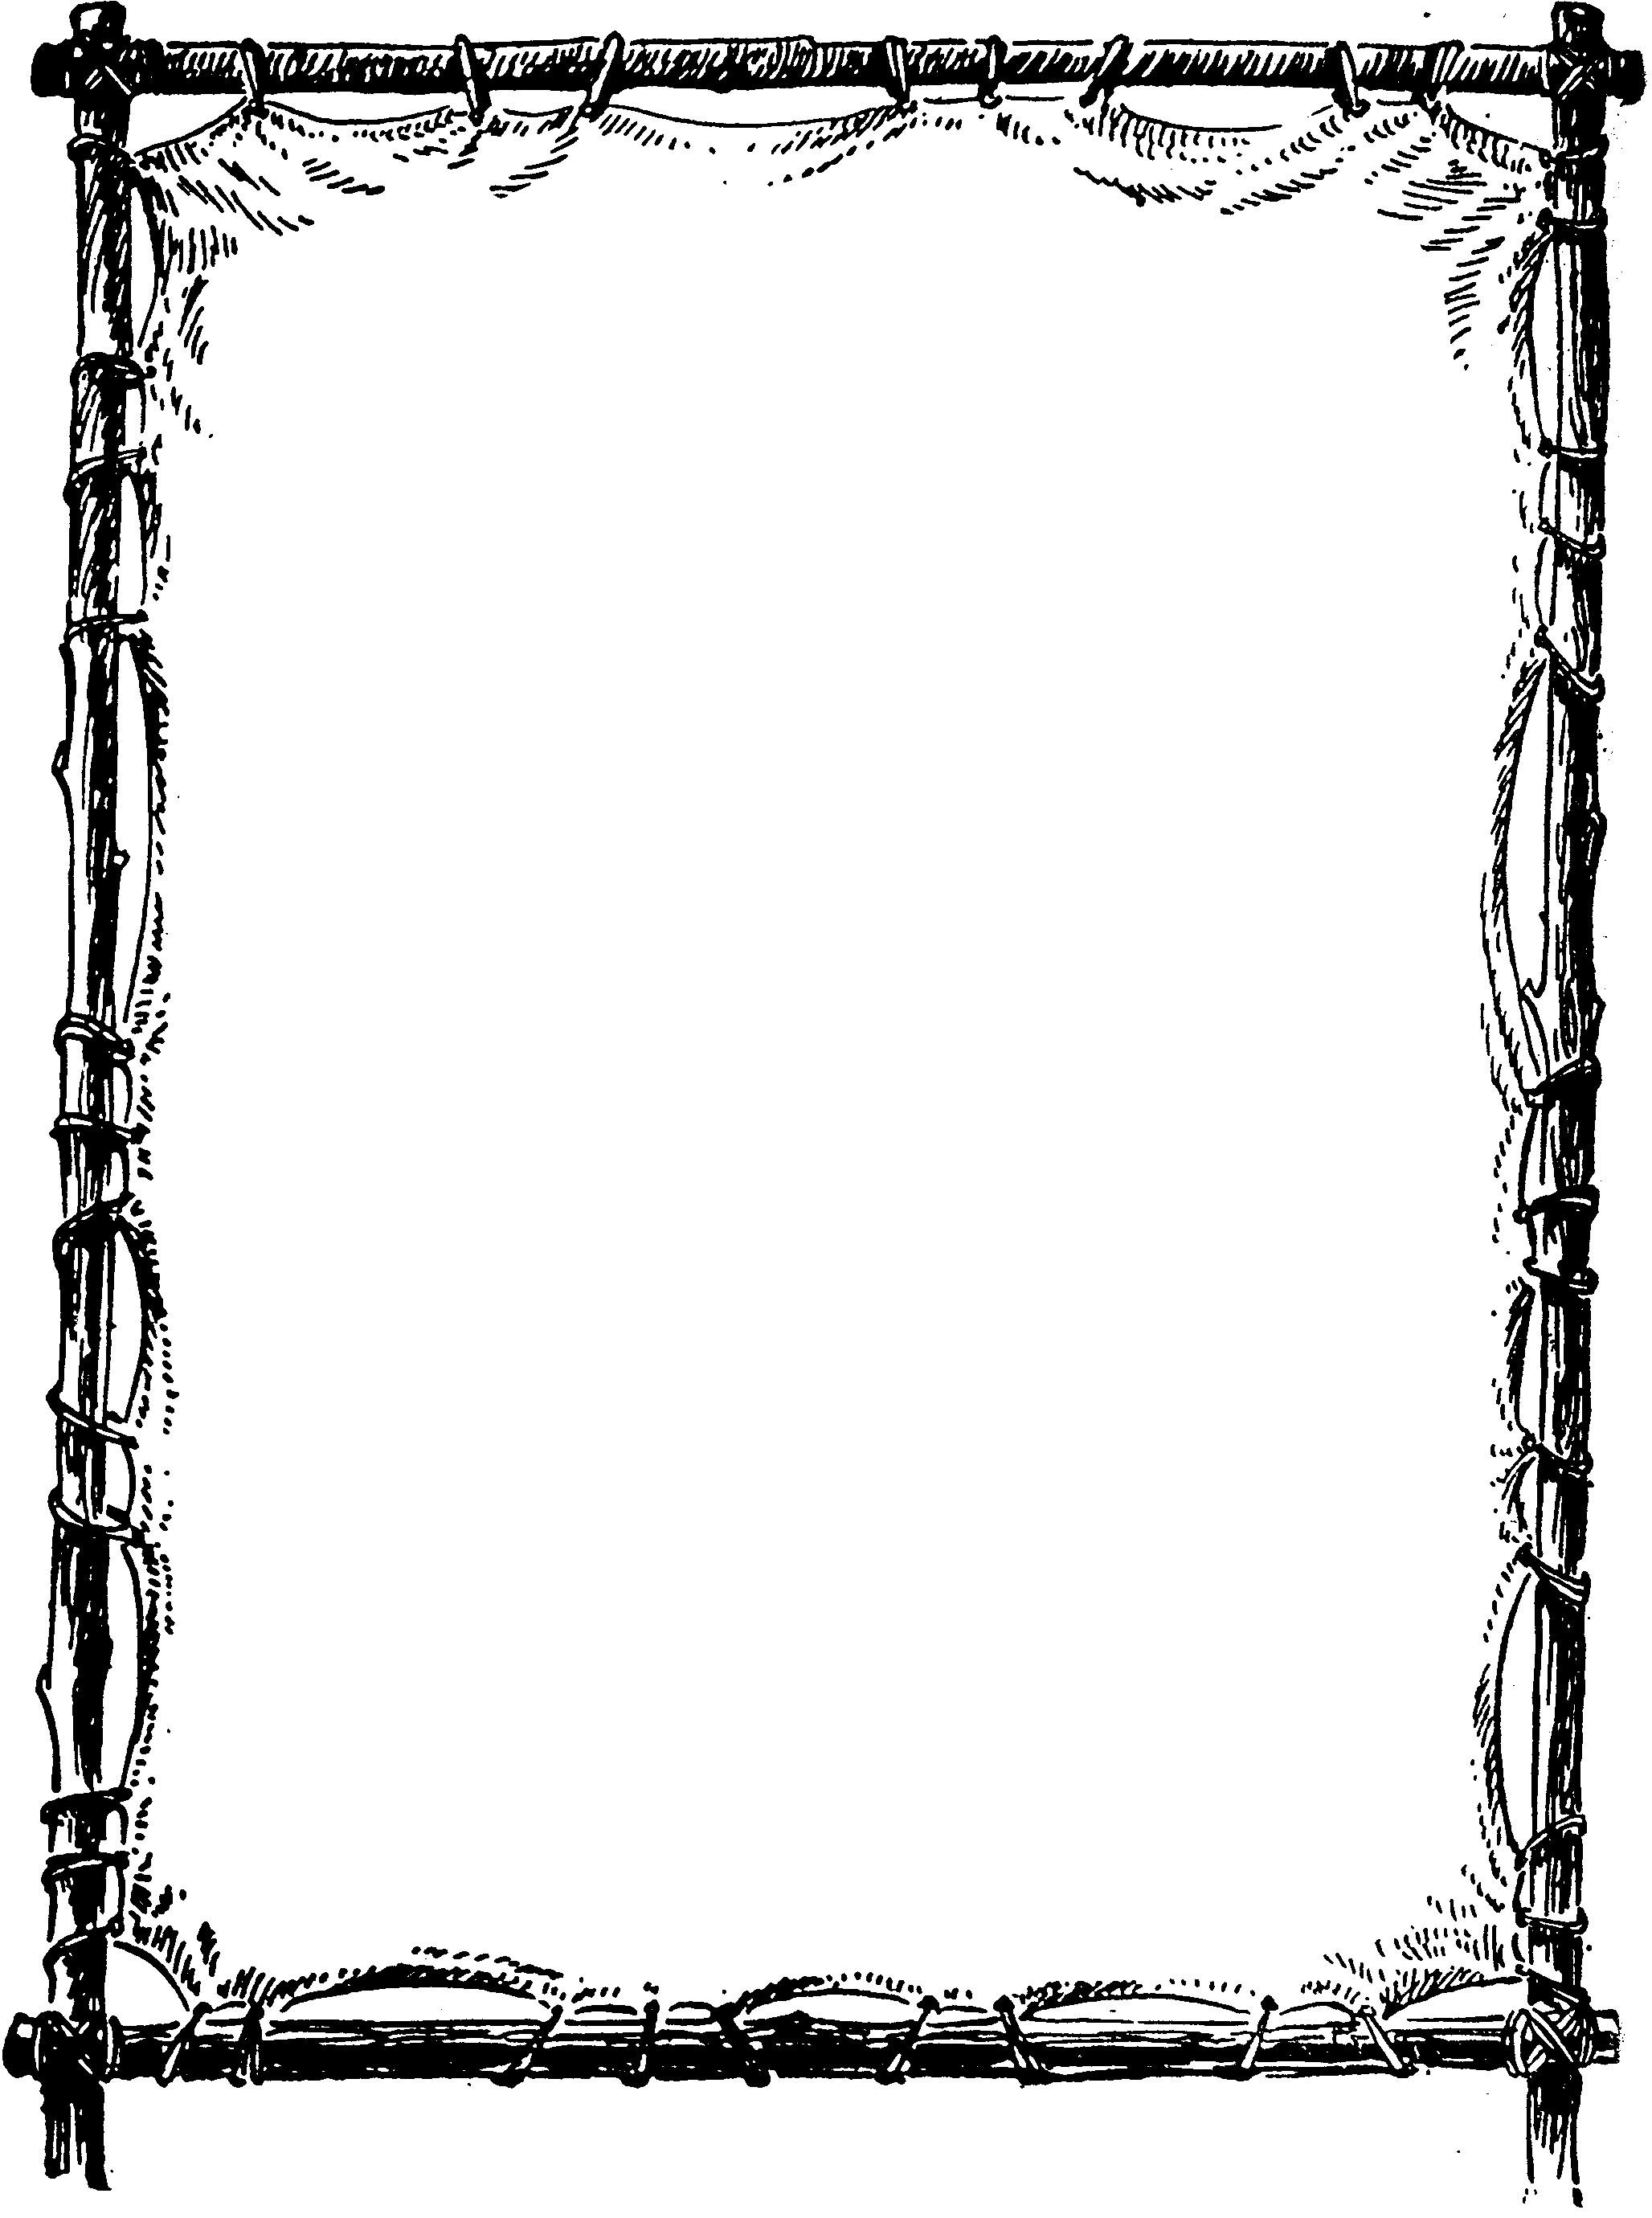 Free clipart for word documents image black and white Image result for frames templates for word documents | flower | Page ... image black and white